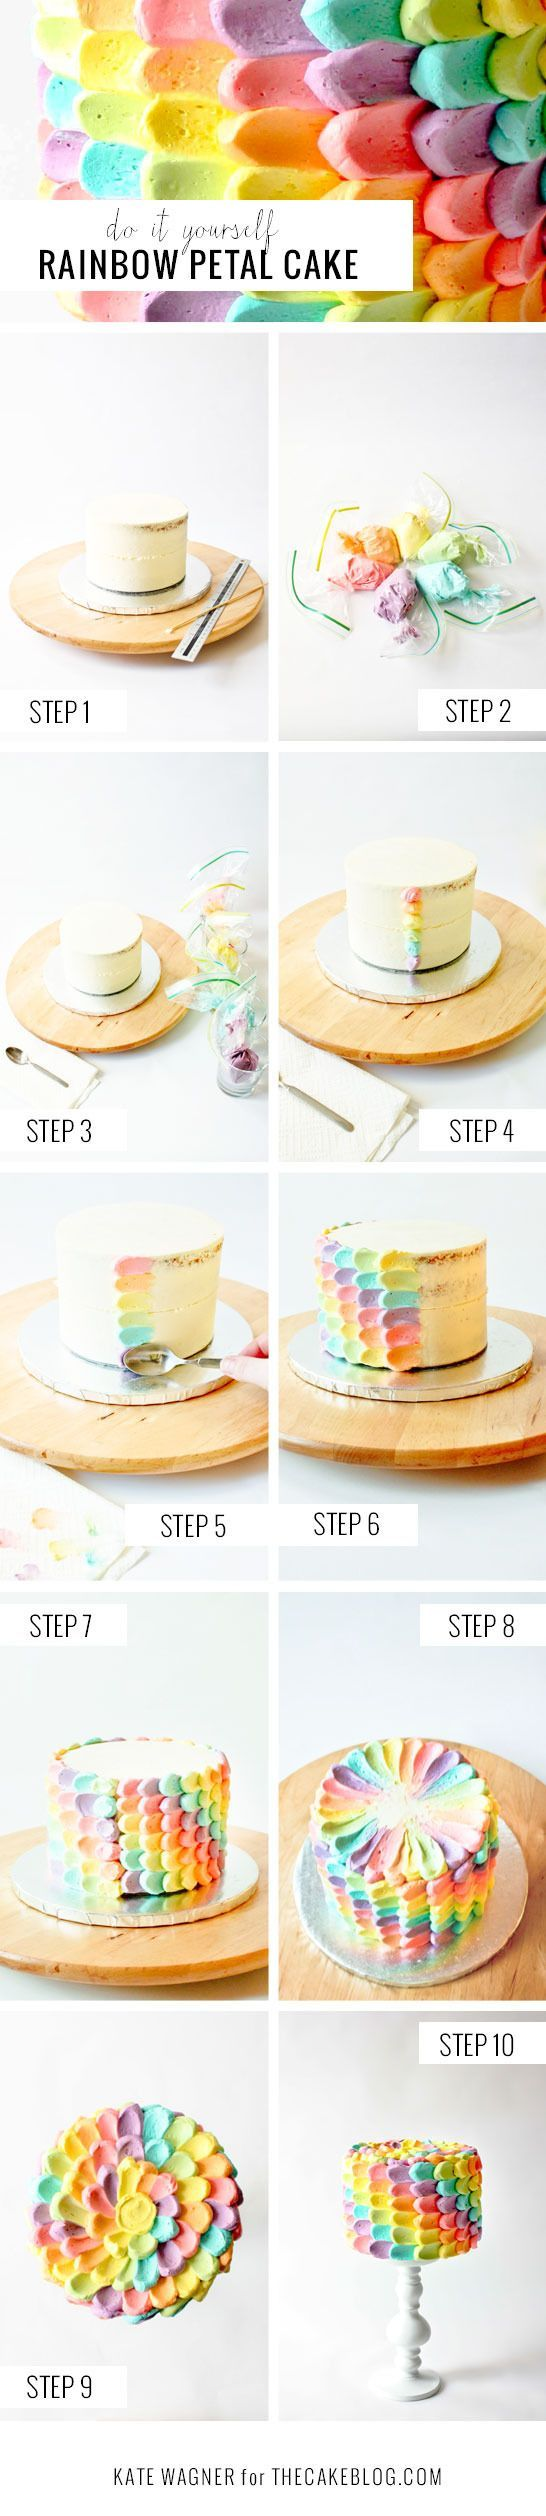 DIY Rainbow Petal Cake by The Cake Blog. With another straightforward and totally achievable DIY. Kate Wagner of The Greedy Baker is using everyday items to decorate a spectacular rainbow cake, perfect for any celebration. It's vivid, bright and has us cheering for a supply list including zip lock bags and spoons. And once you see how easy it is, you'll be cheering too! It's a DIY Rainbow Petal Cake!